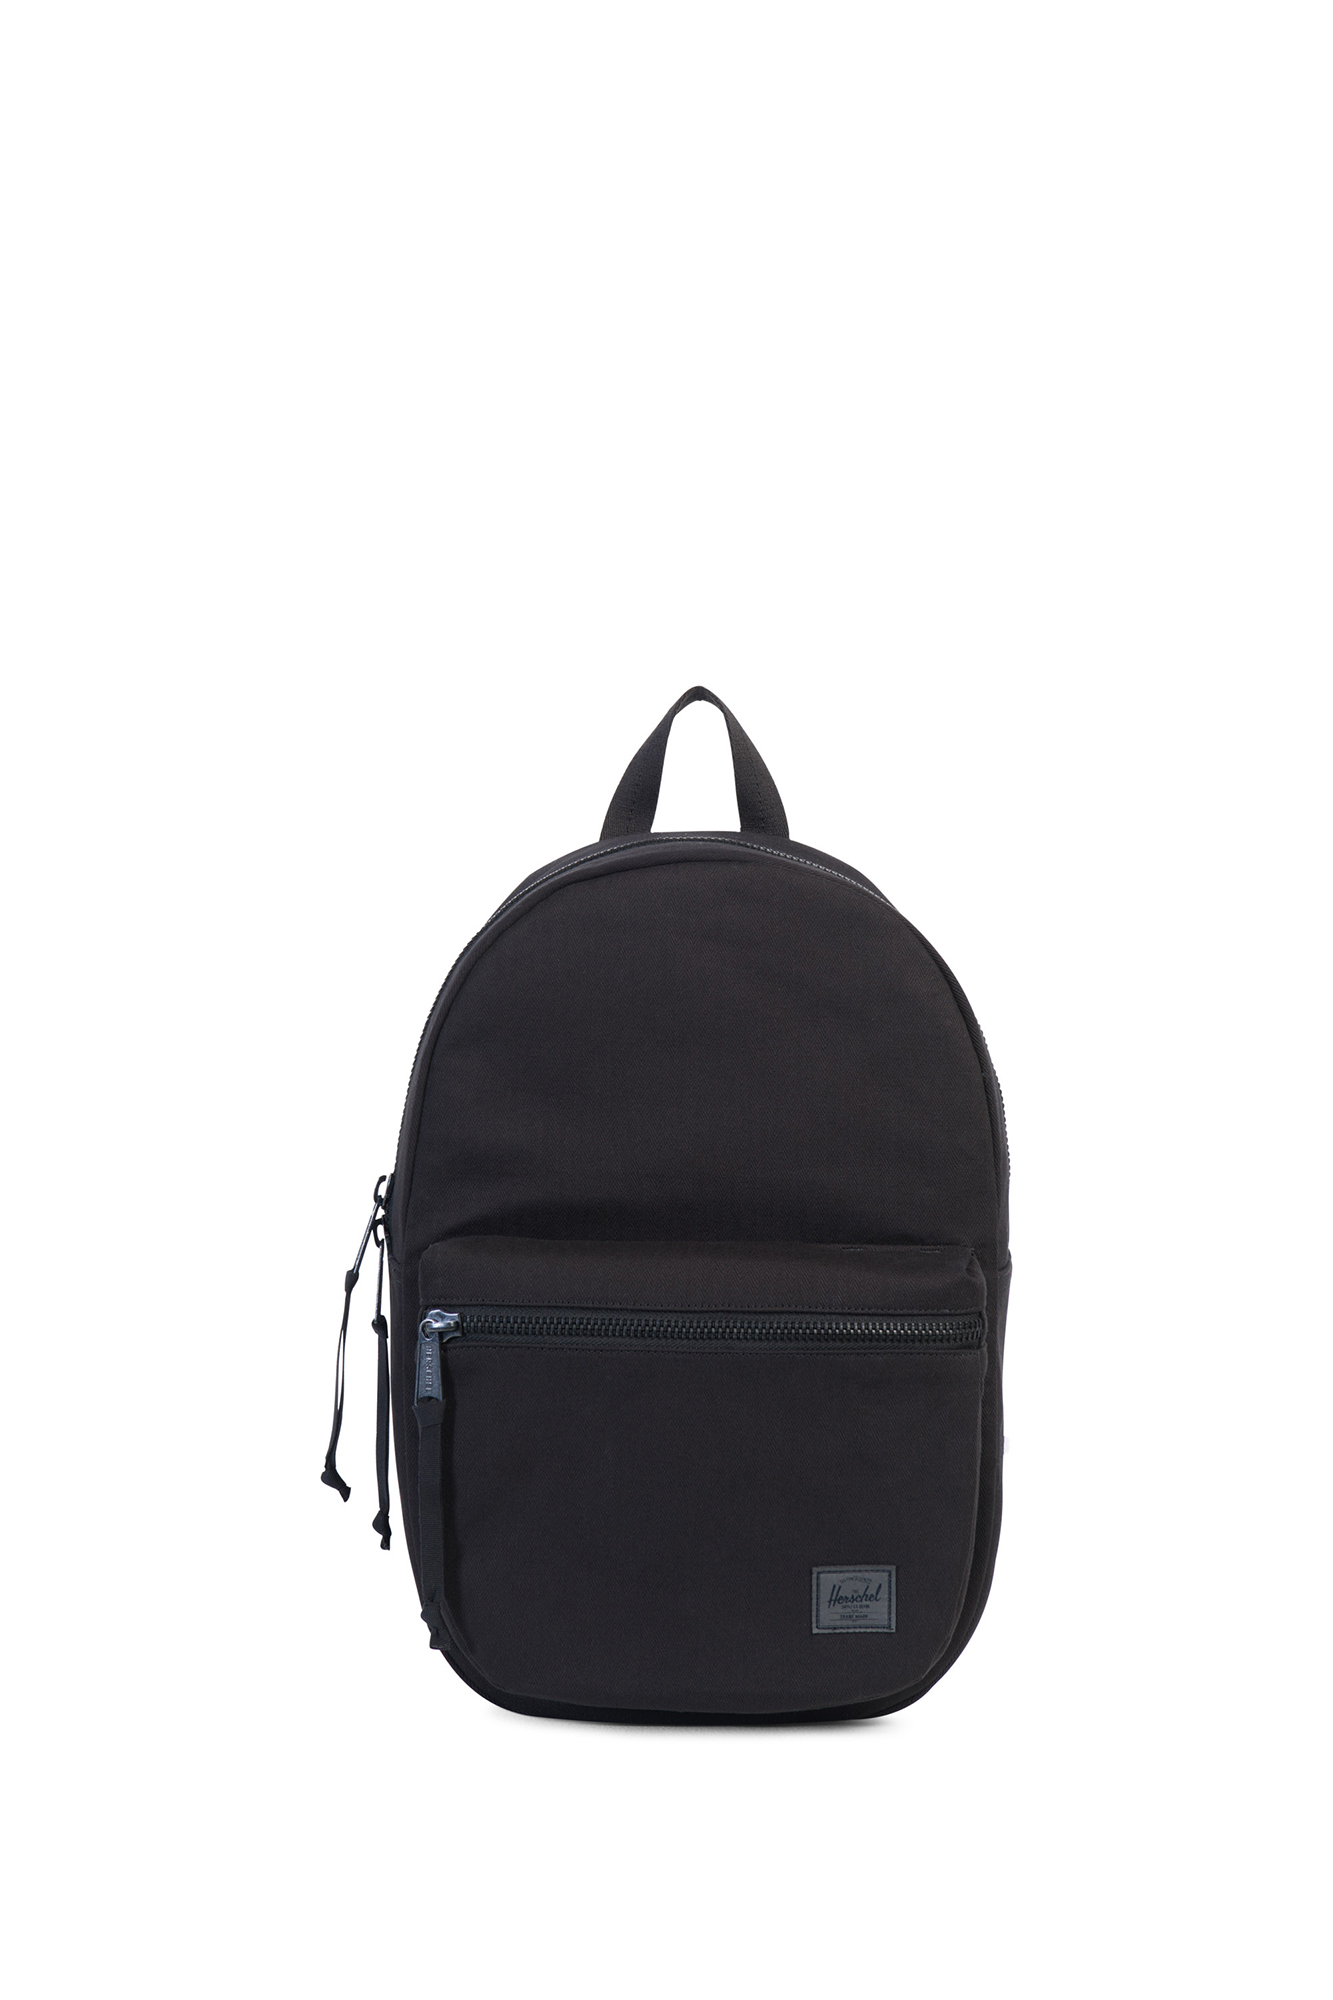 Herschel - Lawson Backpack Black